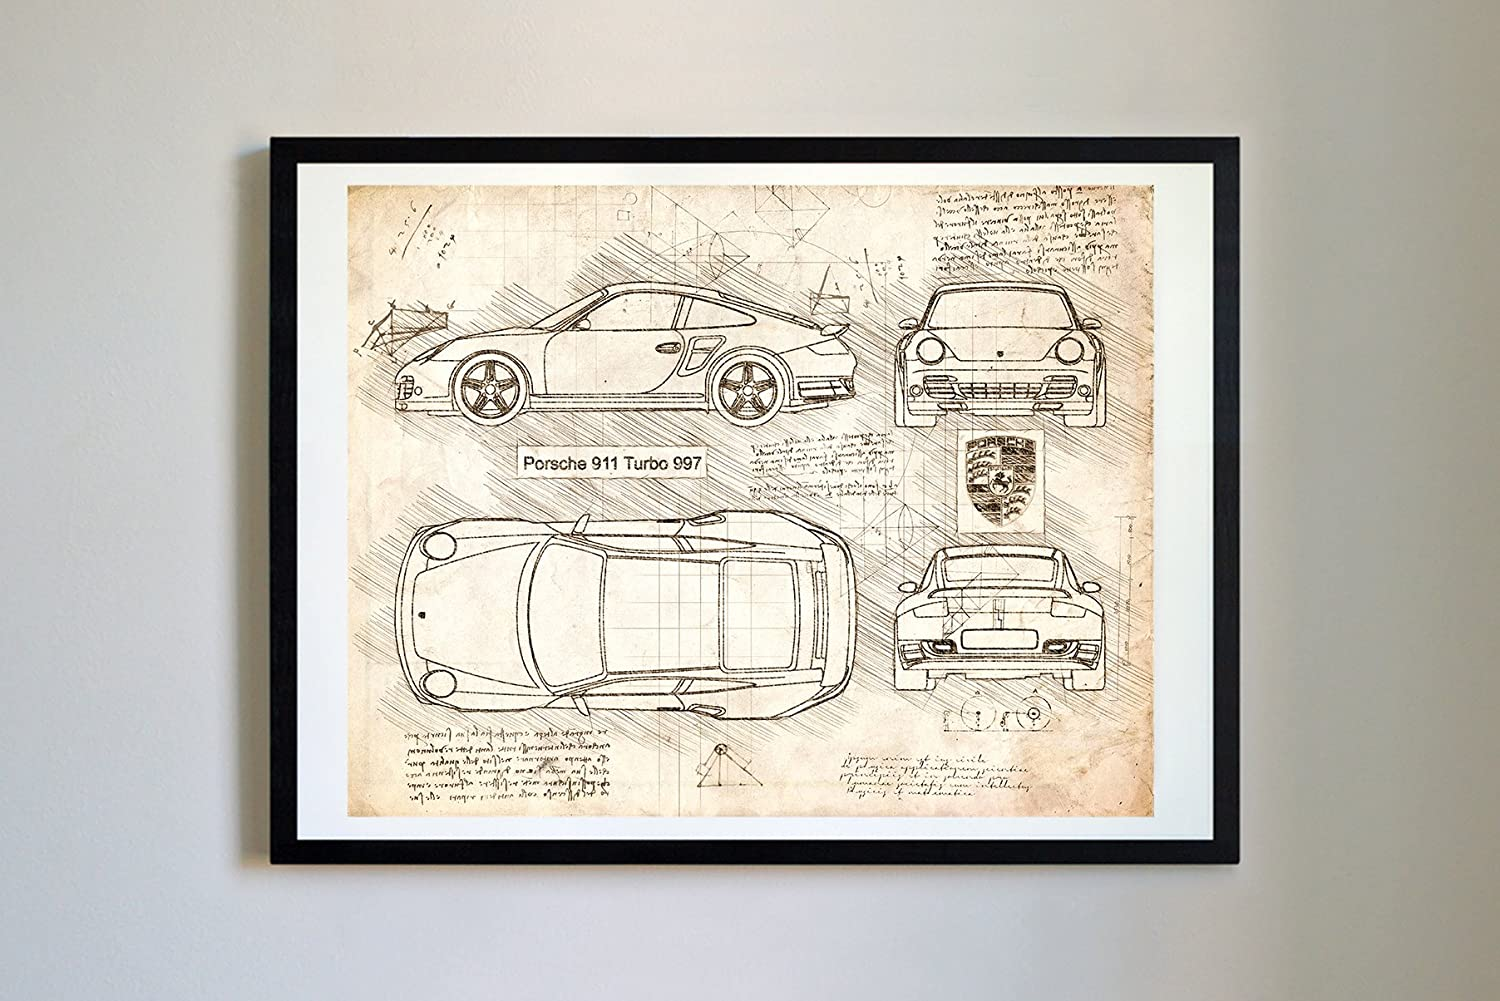 Amazon.com: DolanPaperCo #287 Porsche 911 Turbo 997 2006 Art Print, da Vinci Sketch - Unframed - Multiple Size/Color Options (16x20, Blueprint): Posters & ...